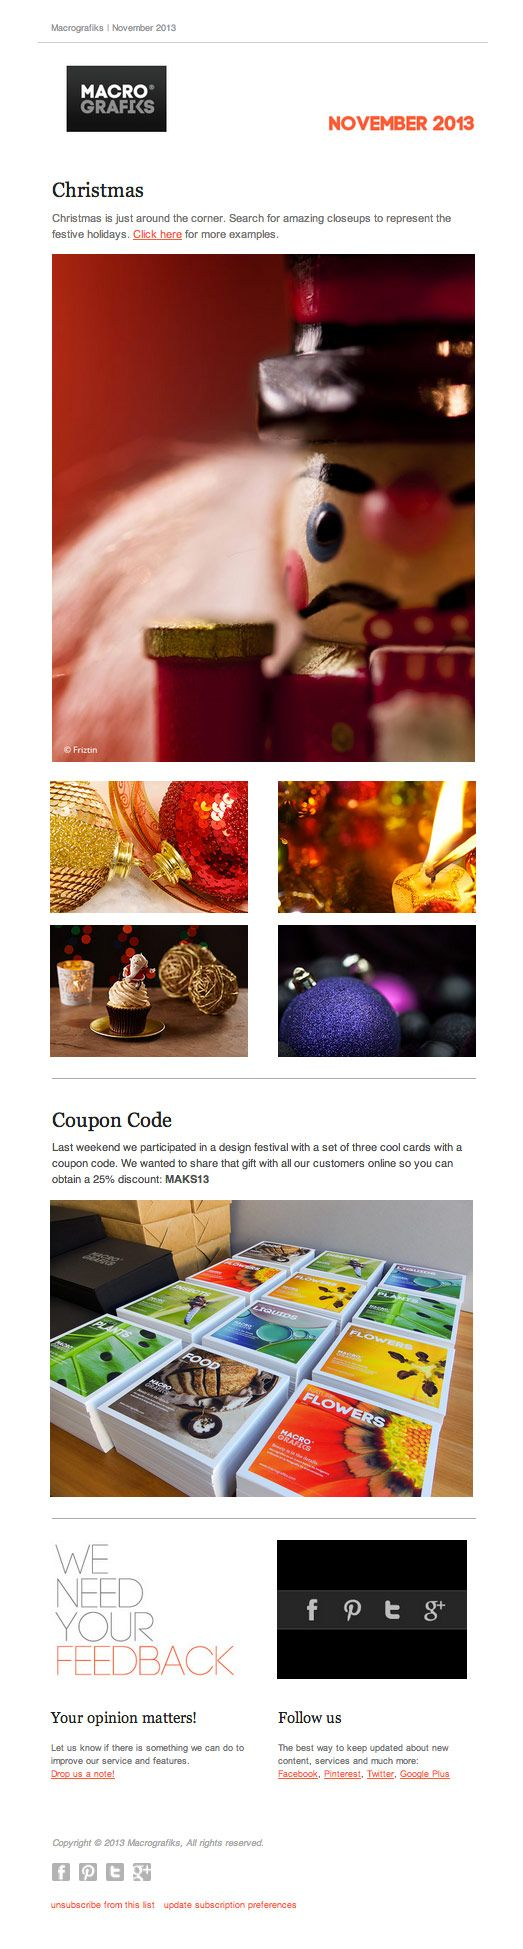 November 2013 Christmas is just around the corner; Coupon Code; Your opinion matters